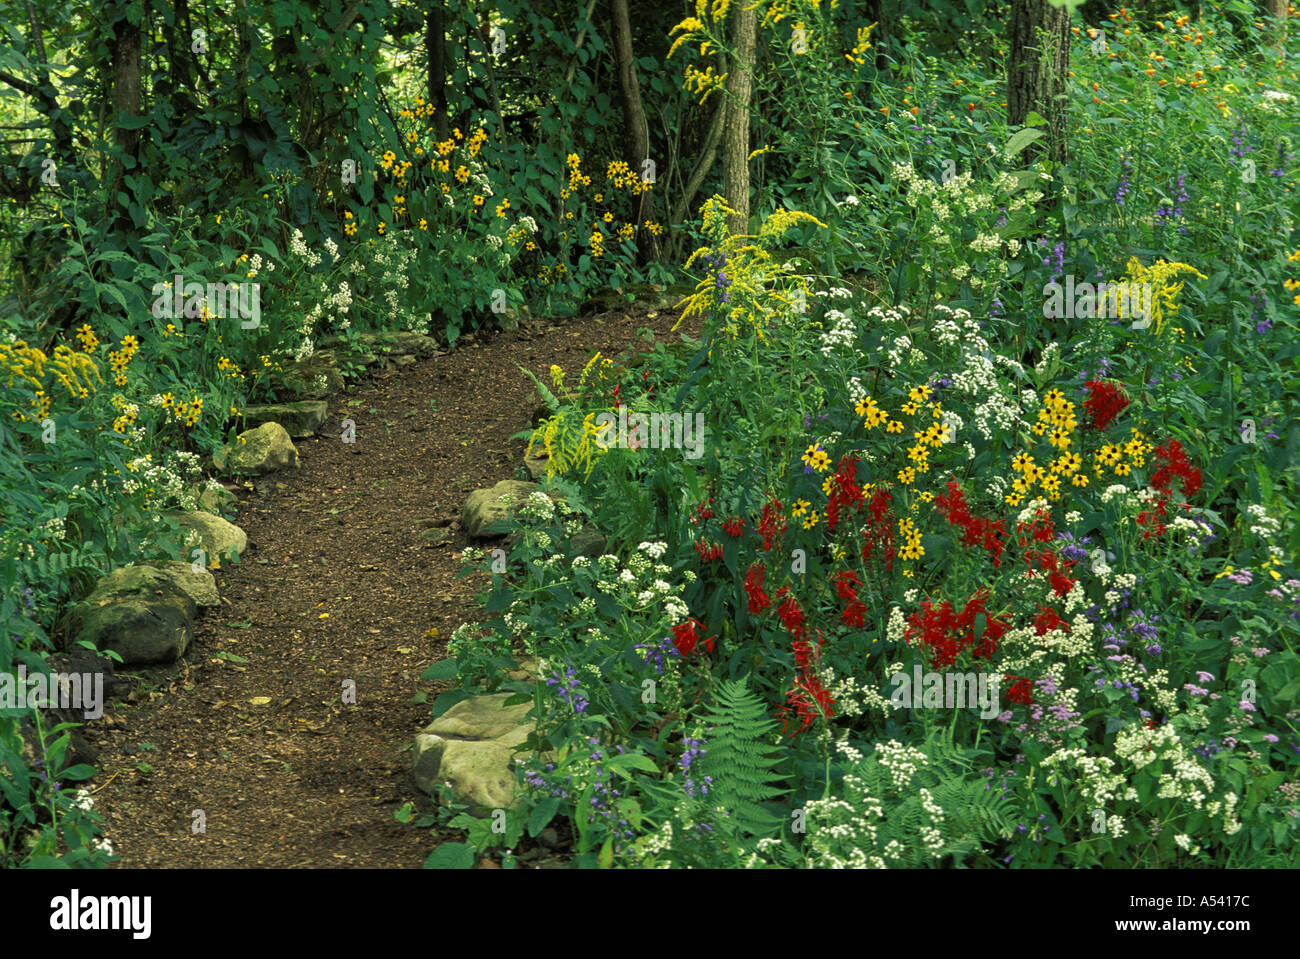 peaceful-path-in-shady-native-wildflower-garden-midwest-usa-A5417C Native Wildflower Garden Designs on wild garden design, herb garden design, cactus garden design, organic garden design, sand design, gravel design, small garden design,